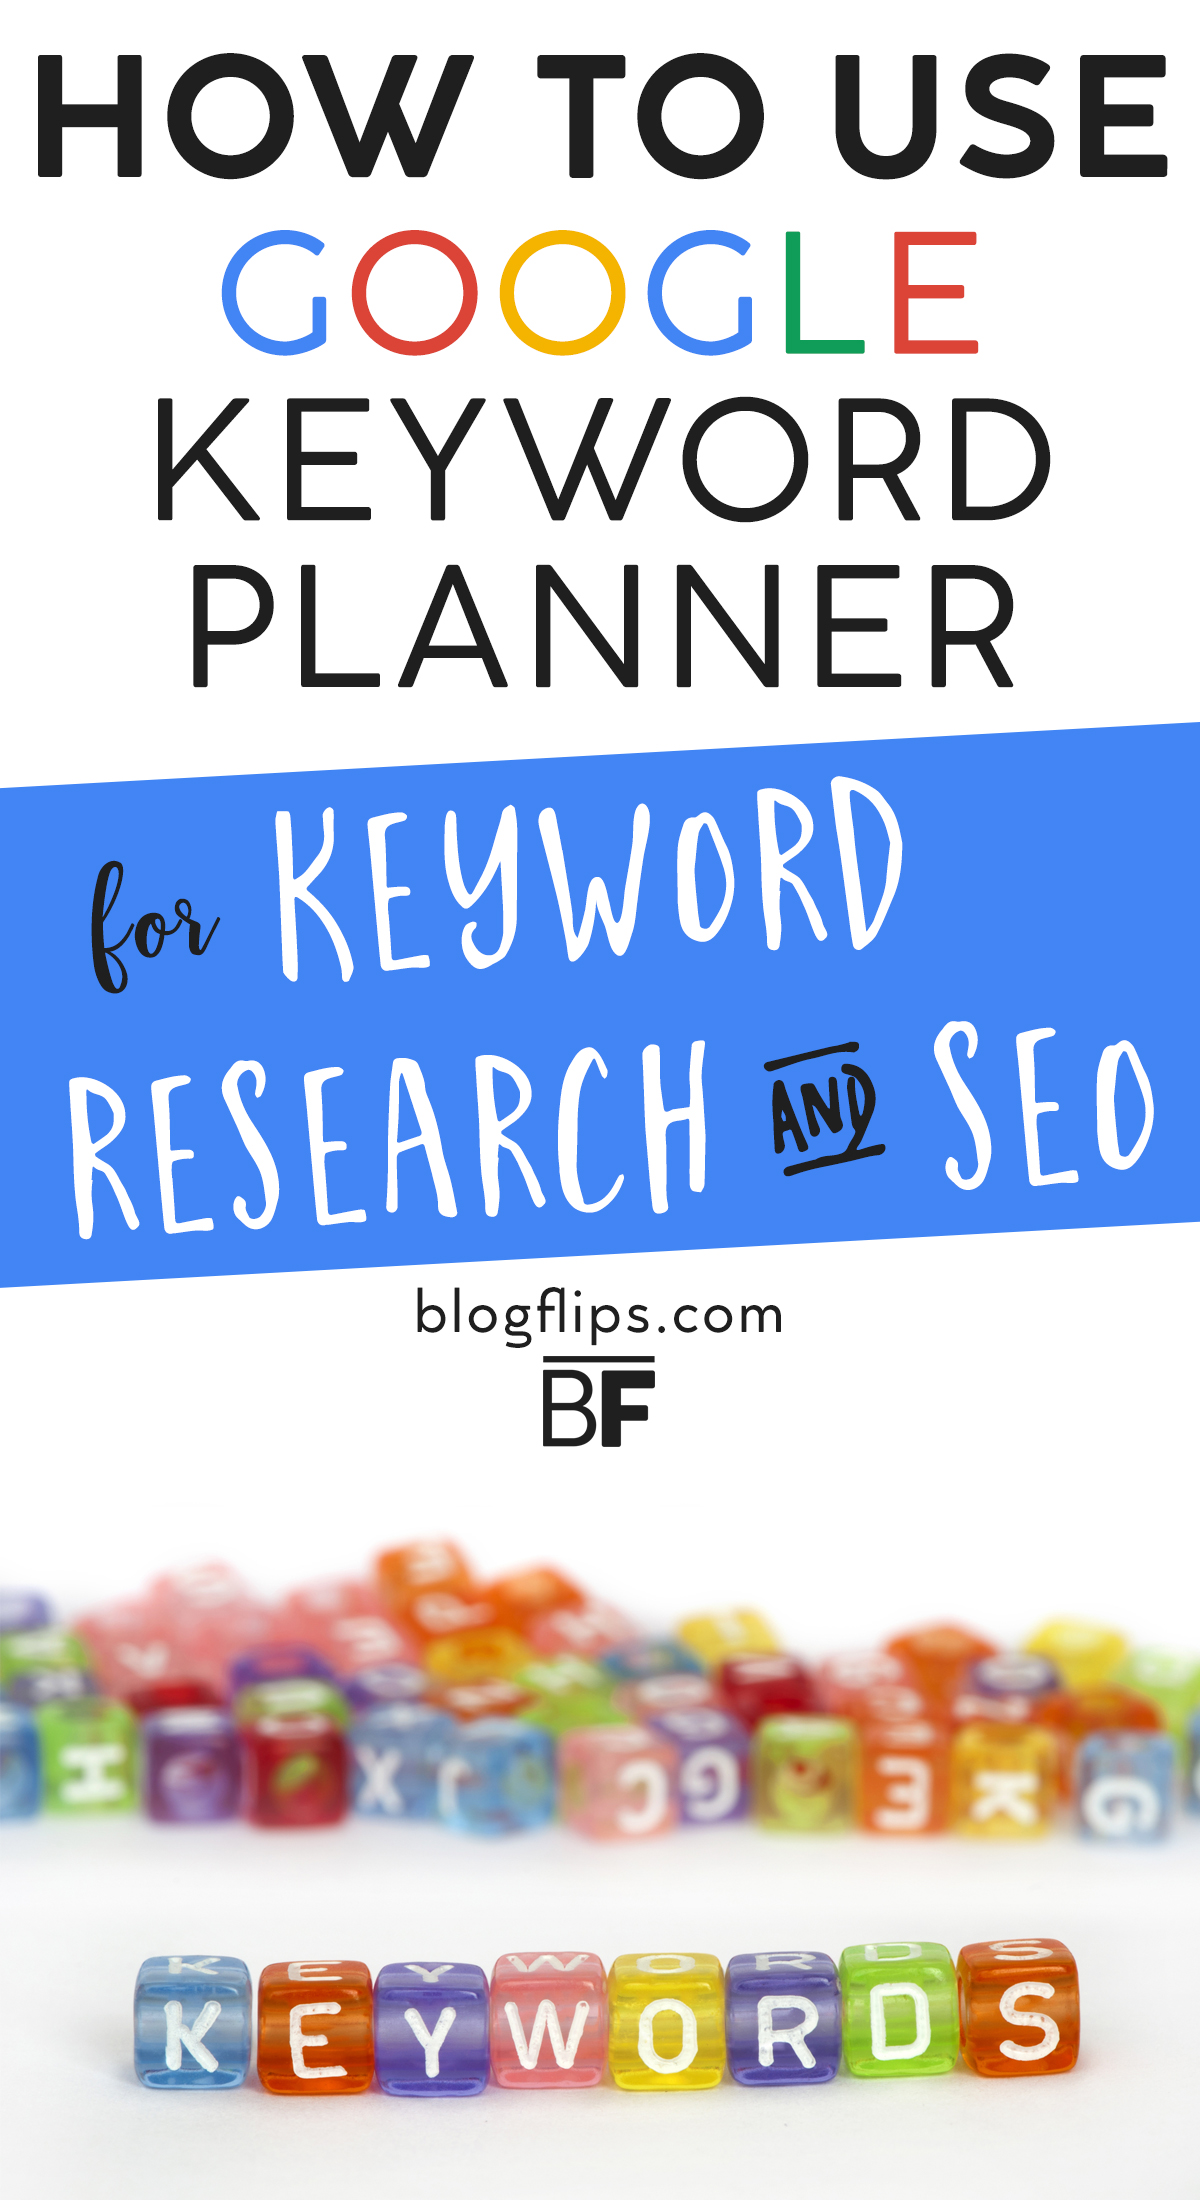 How To Use Google Keyword Planner For Keyword Research and SEO